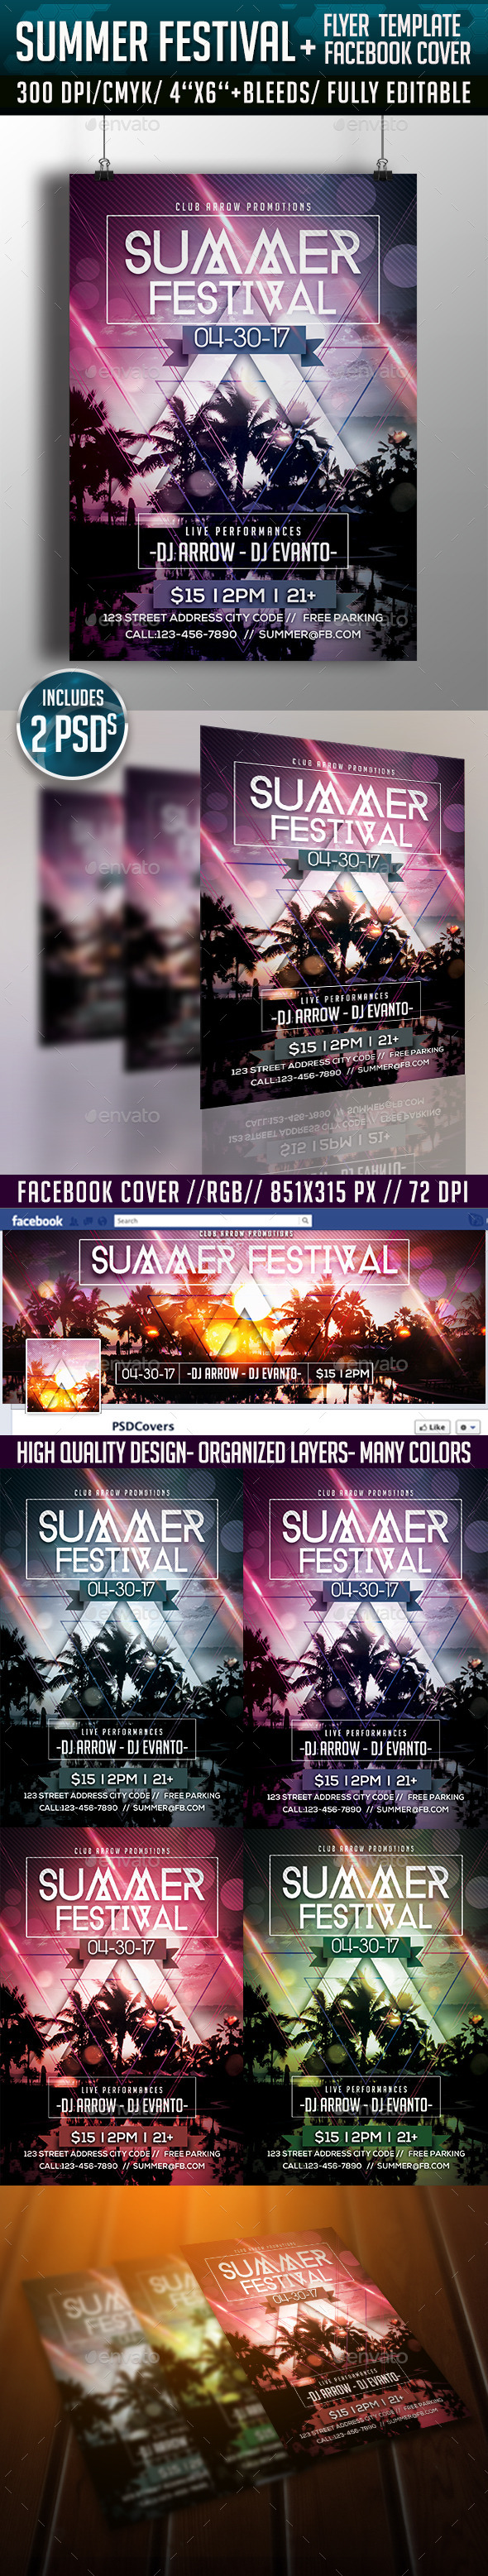 Summer Festival Flyer Template